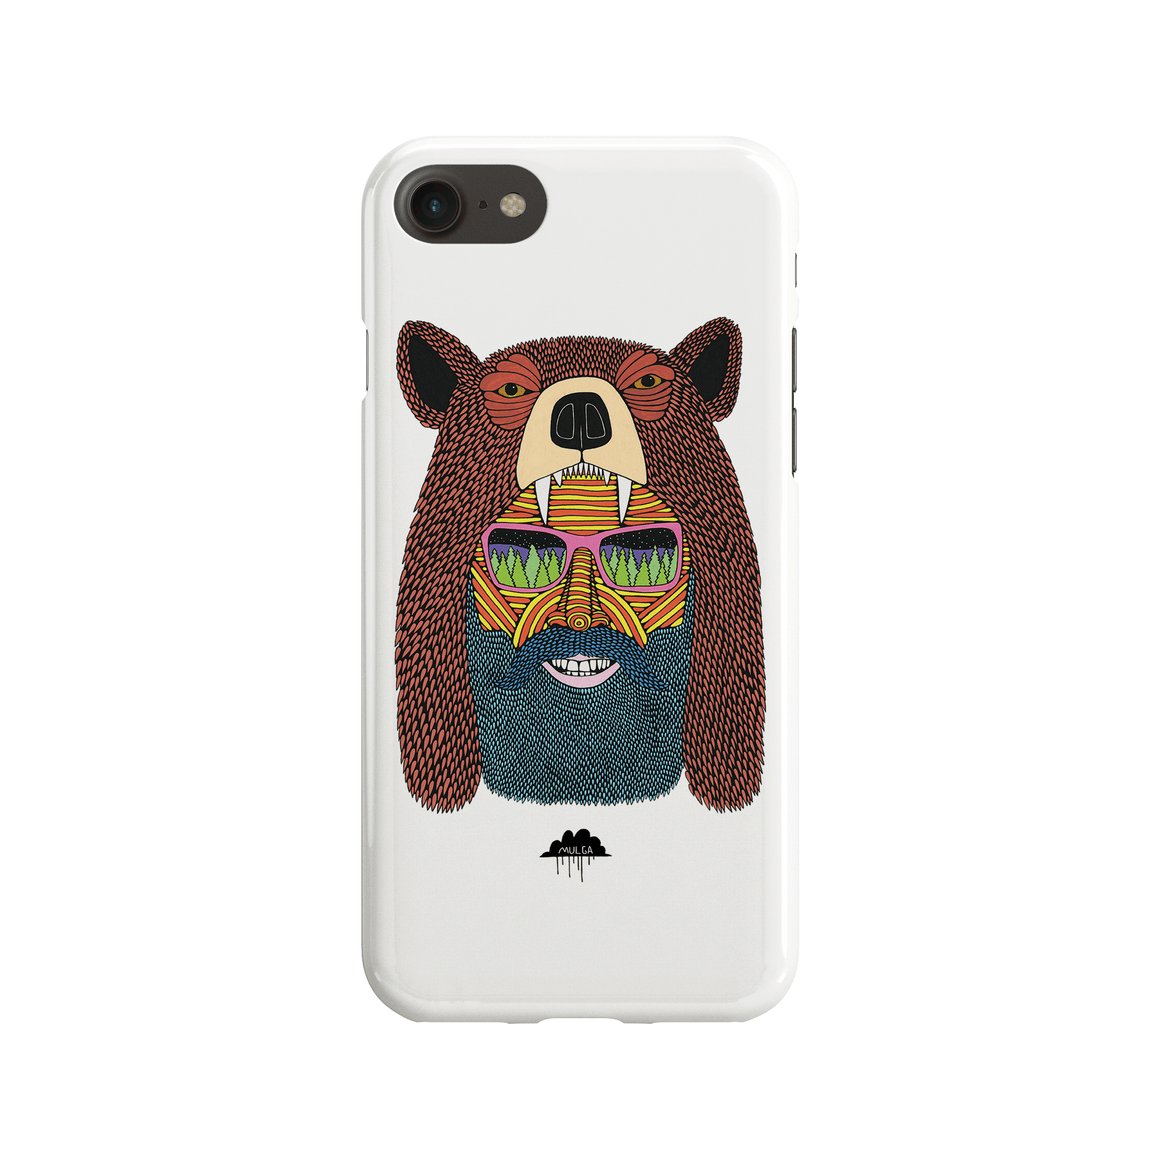 Bear Hat Bob Phone Case - Premium Artwear Curartee